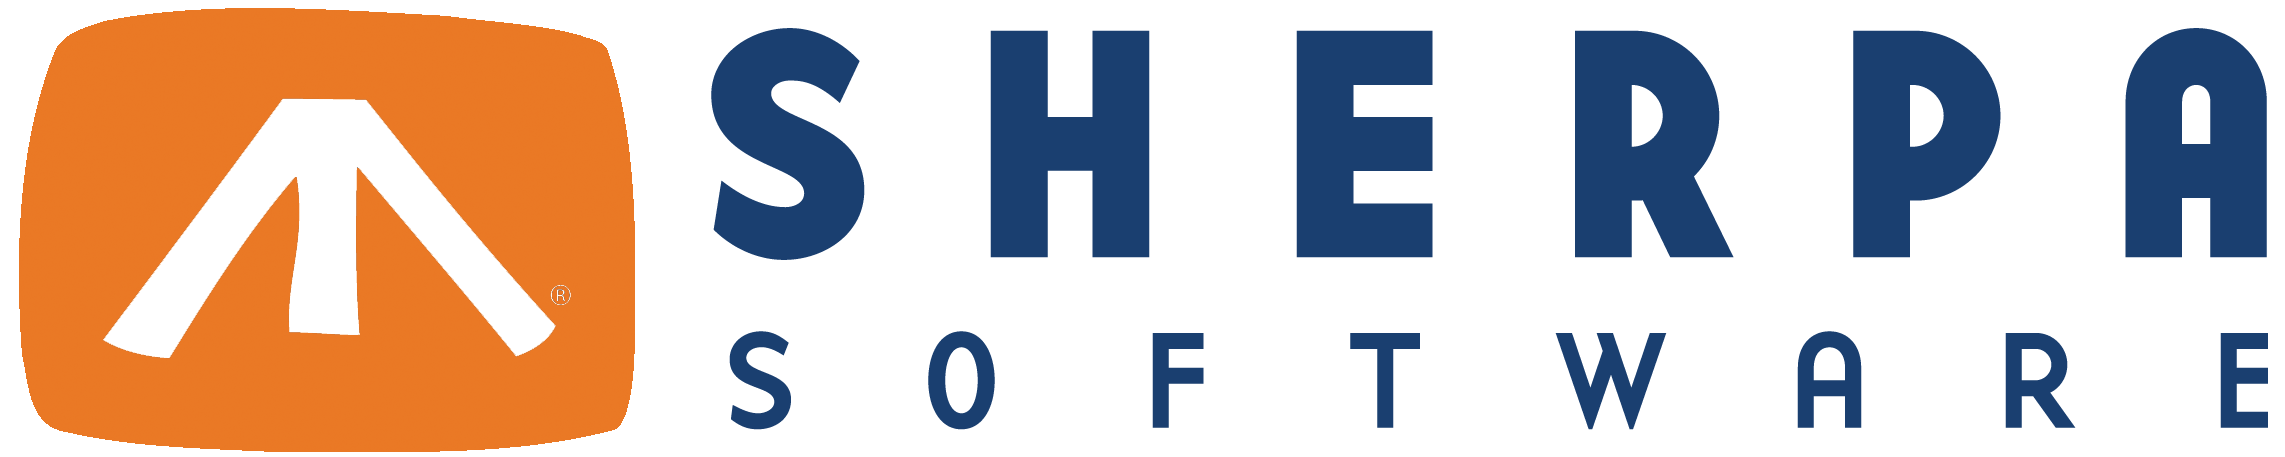 logo-mid.png